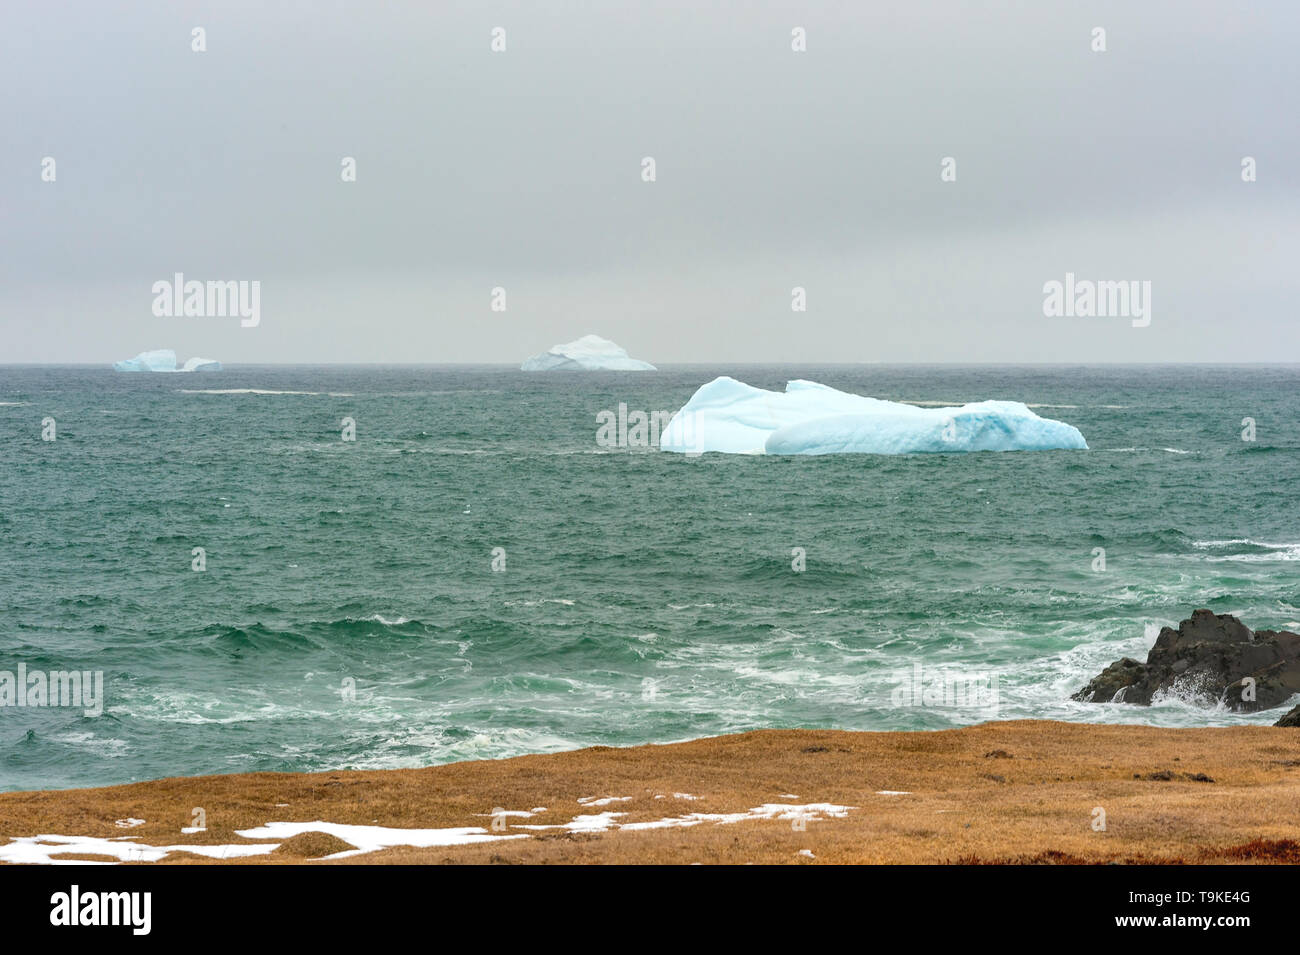 Three ice bergs - Stock Image